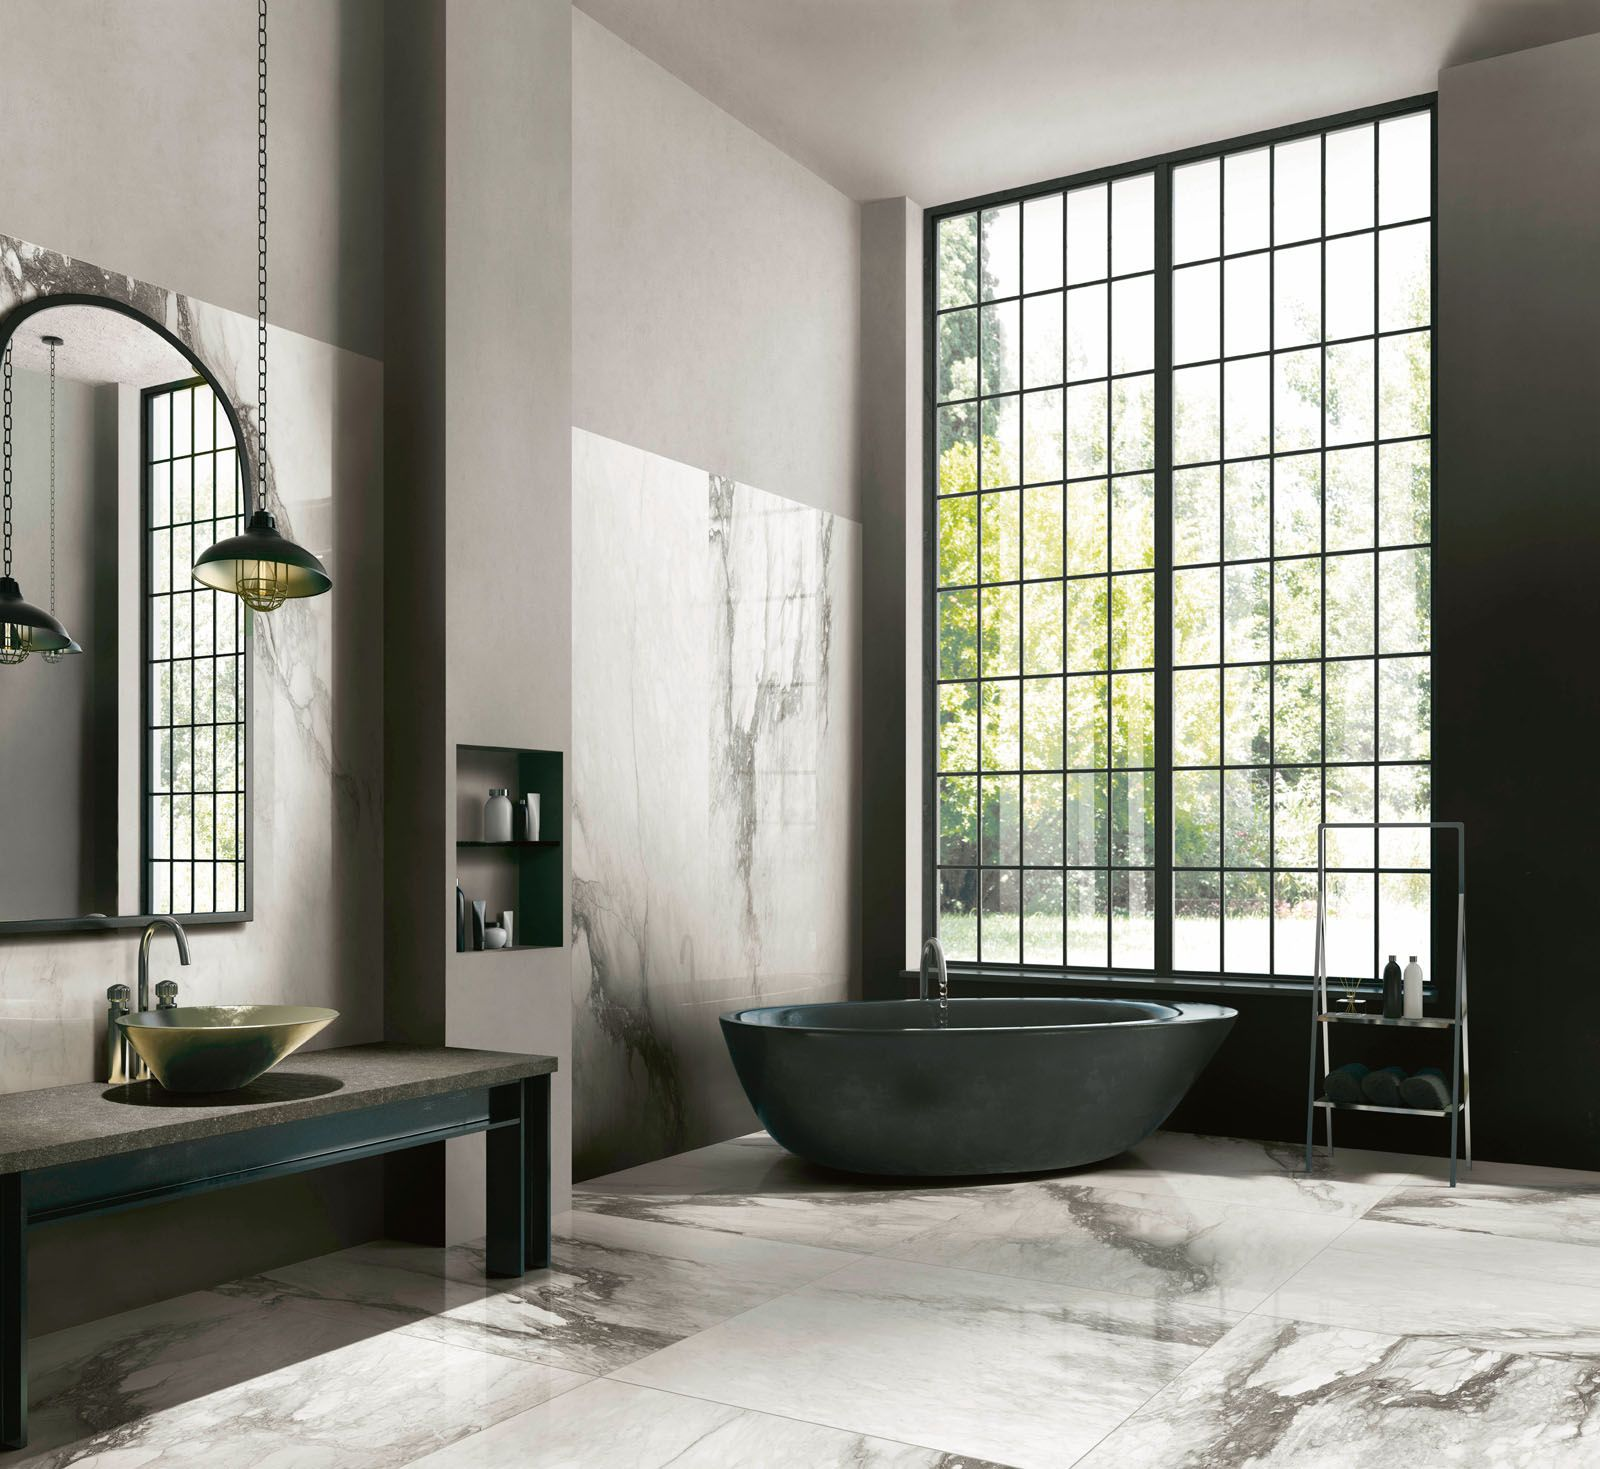 6 Inspiring Ways To Design Your Bathroom